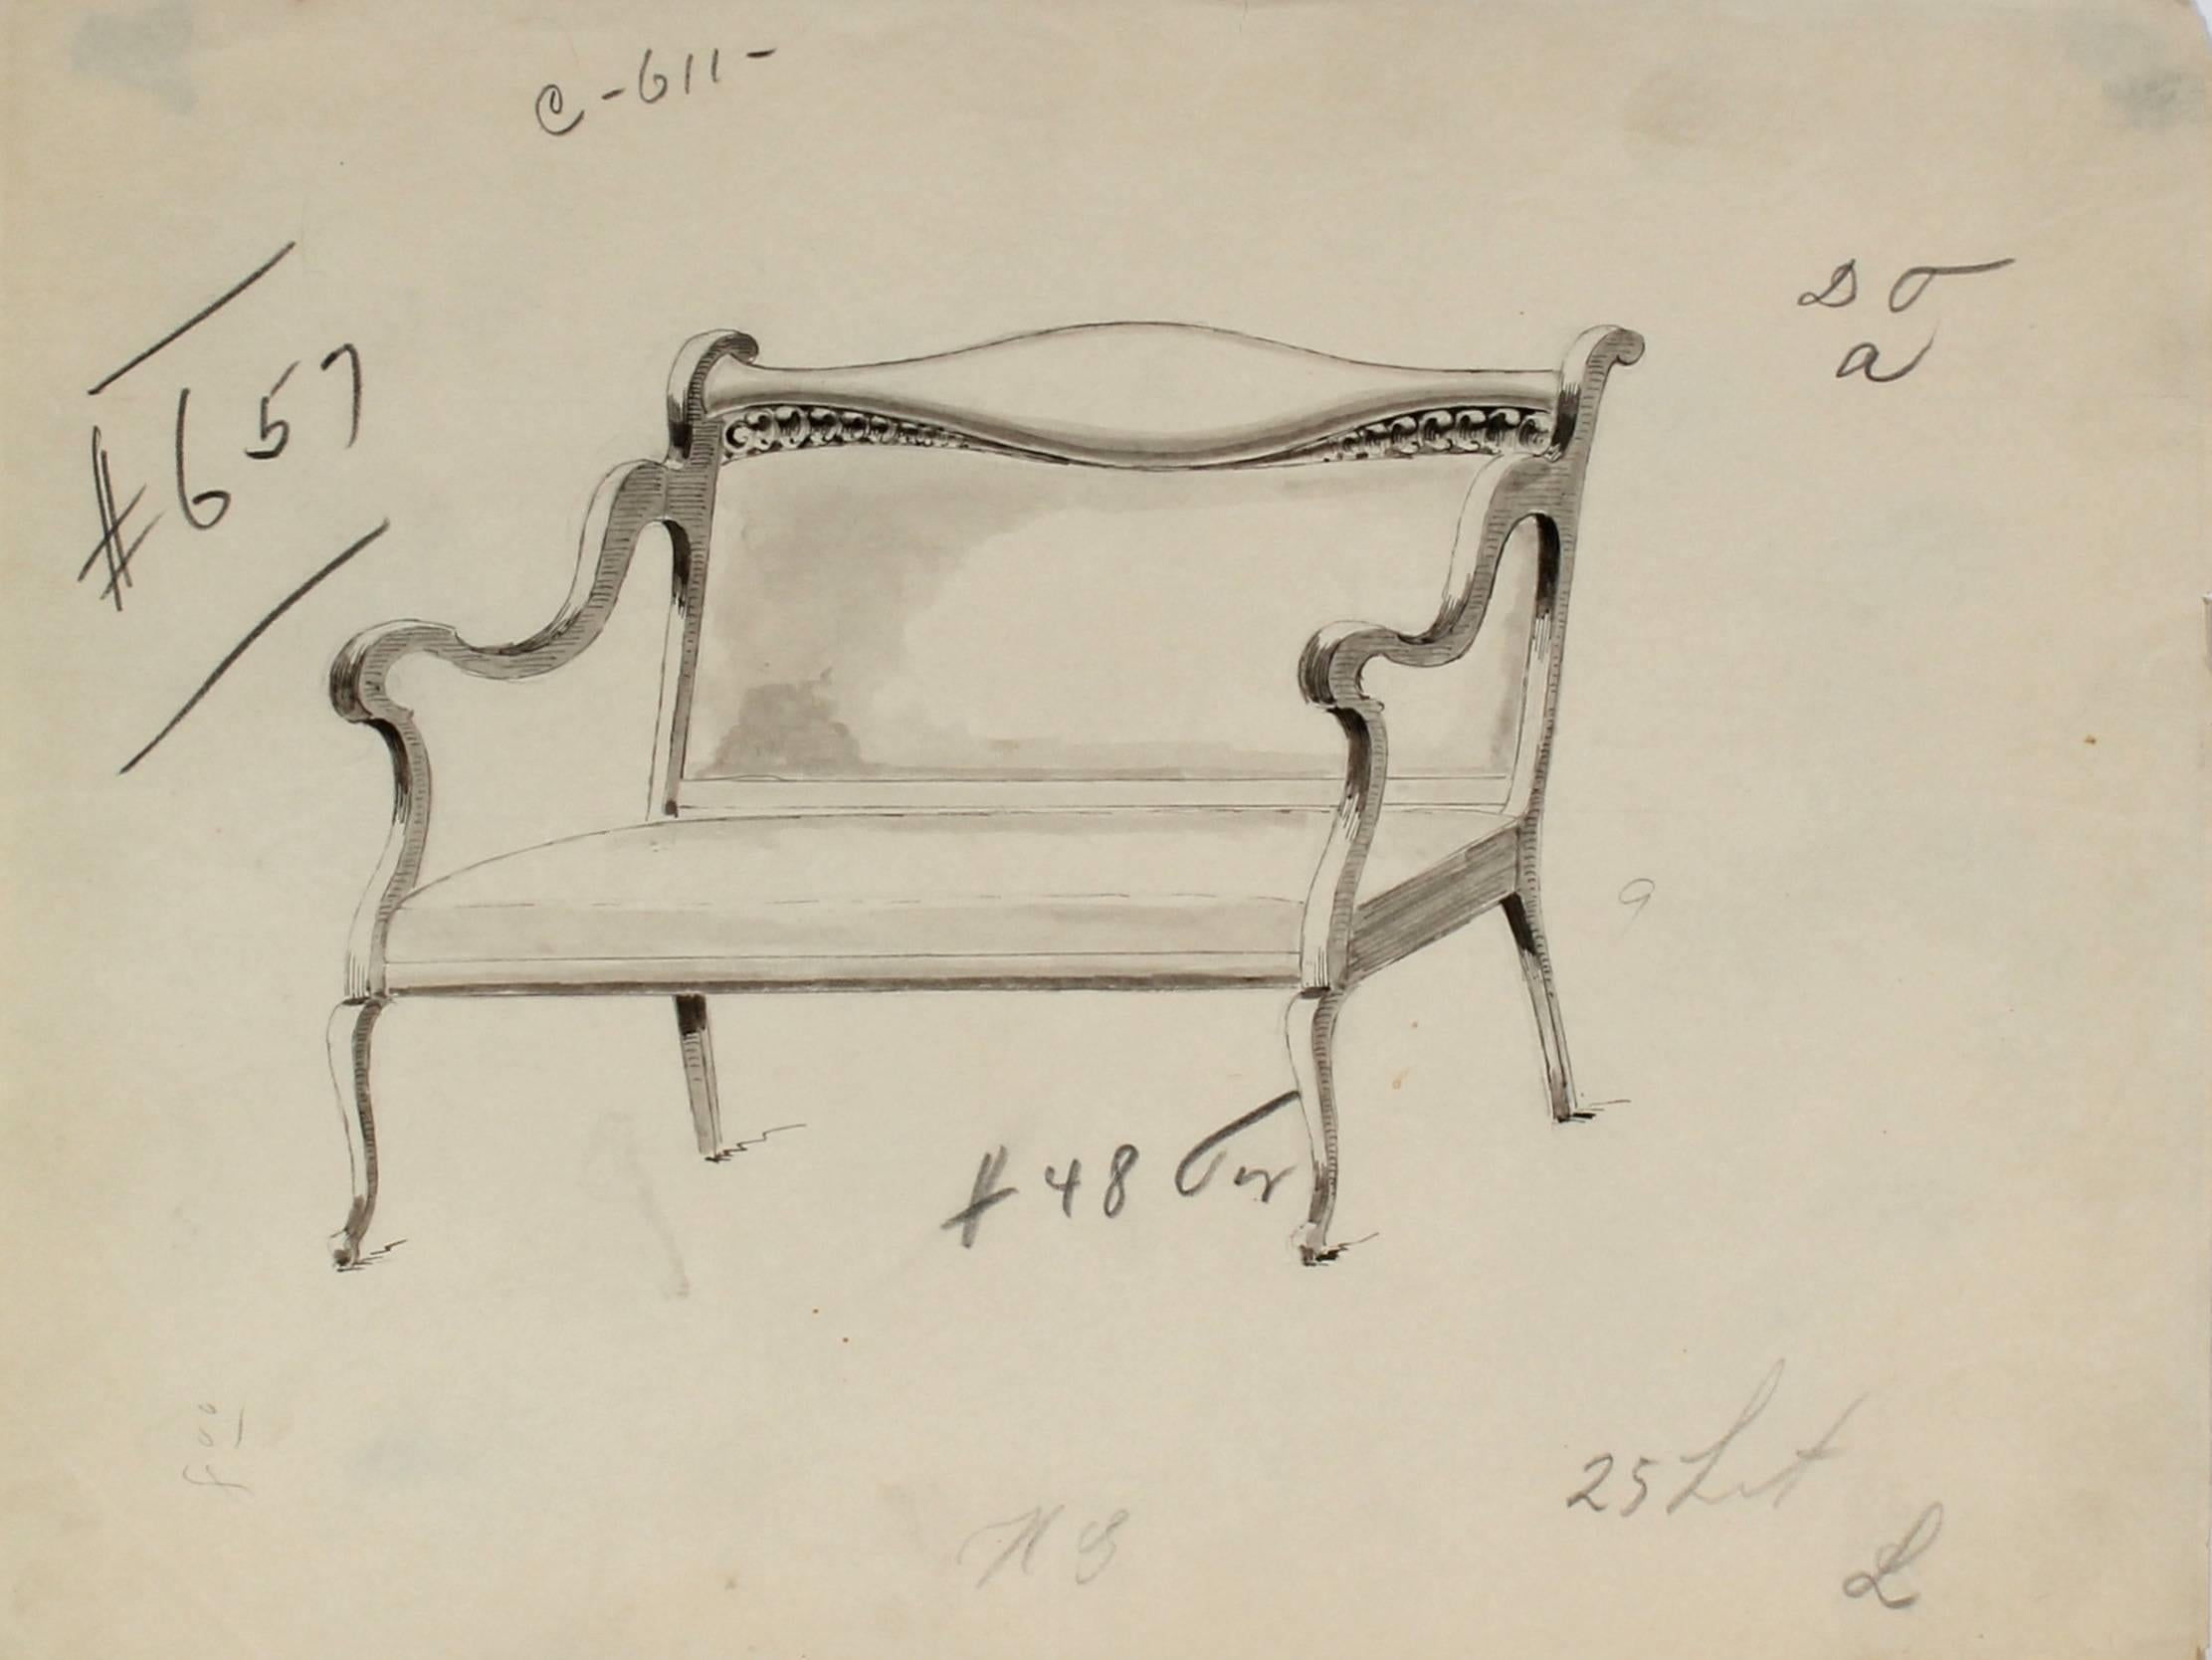 Early 20th Century Furniture Sketch, Ink and Graphite